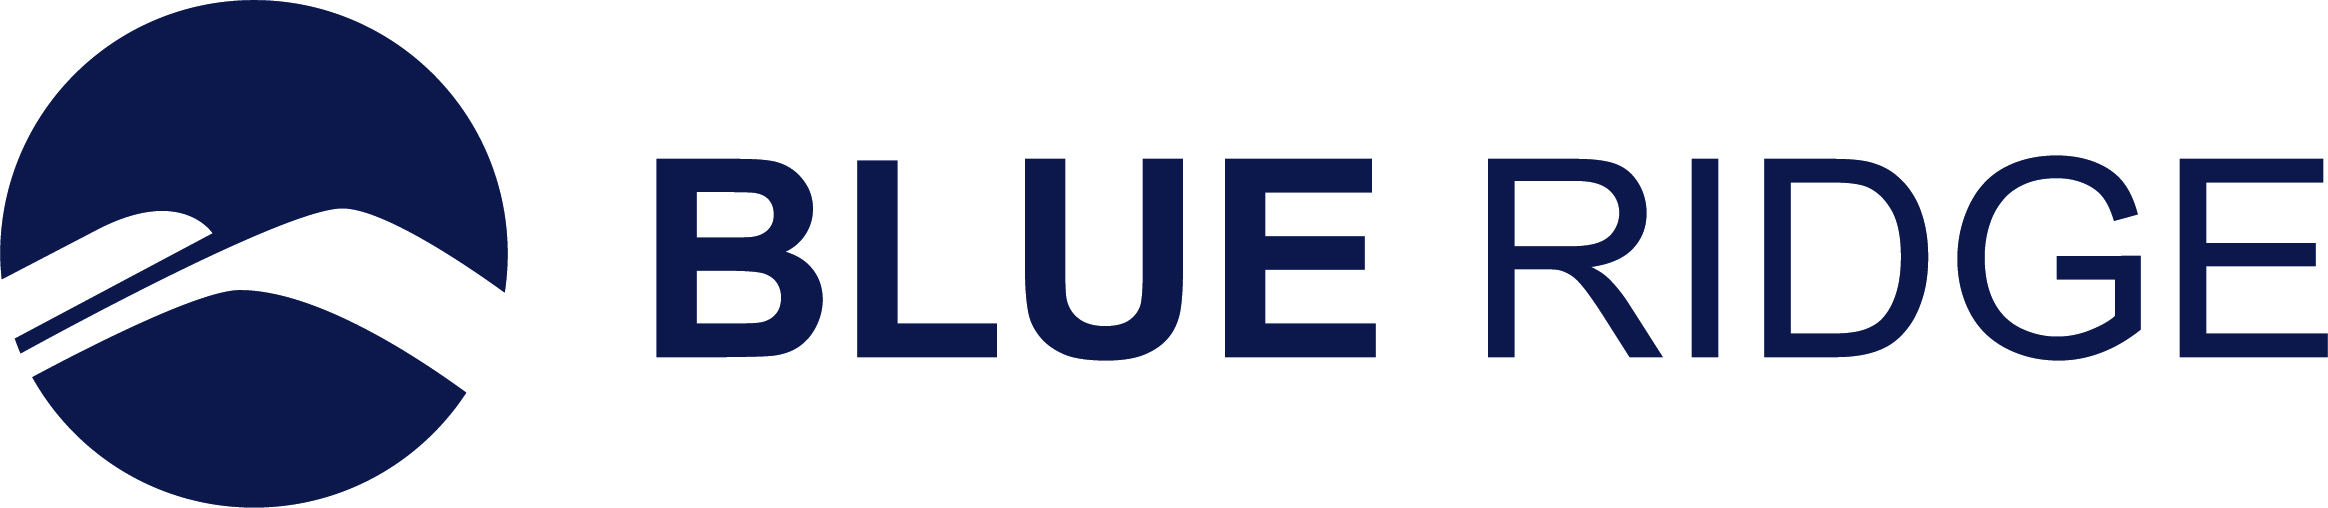 Norwegian Building Materials Distributor Neumann Bygg Selects Blue Ridge to Improve Forecast Accuracy and Supply Chain Execution